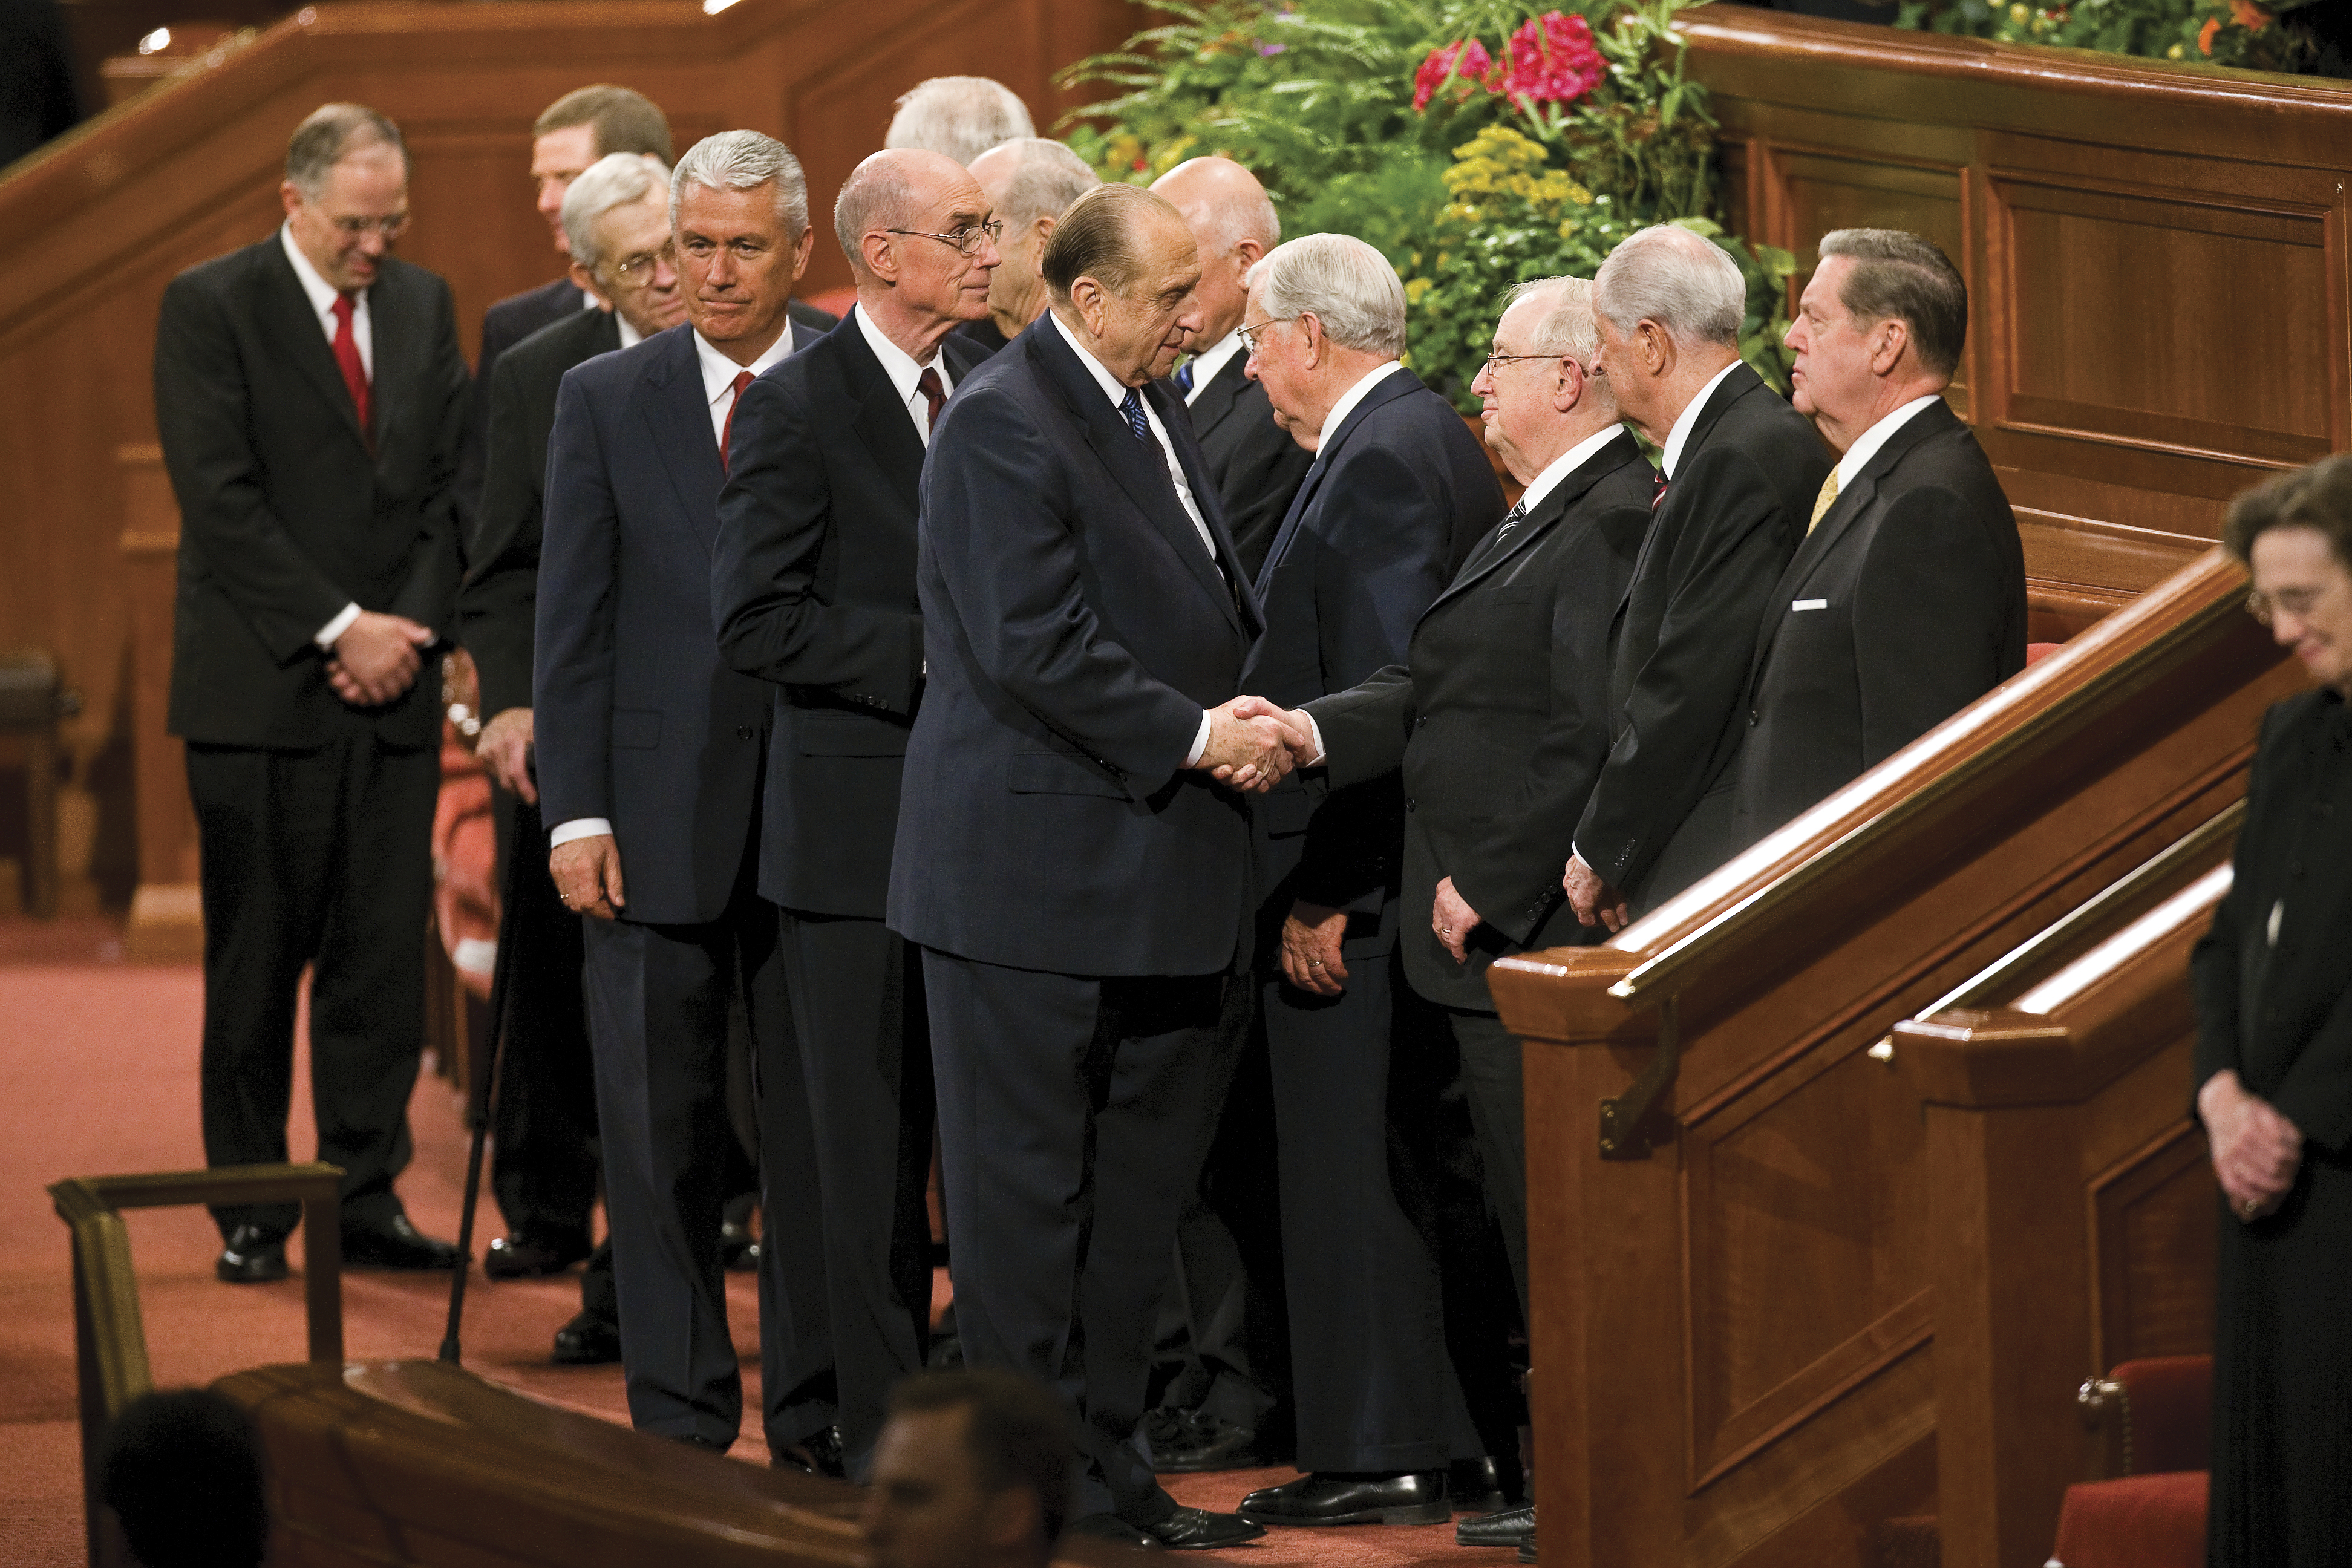 Thomas S. Monson shakes hands with members of the Quorum of the Twelve Apostles on the stand at the Conference Center.